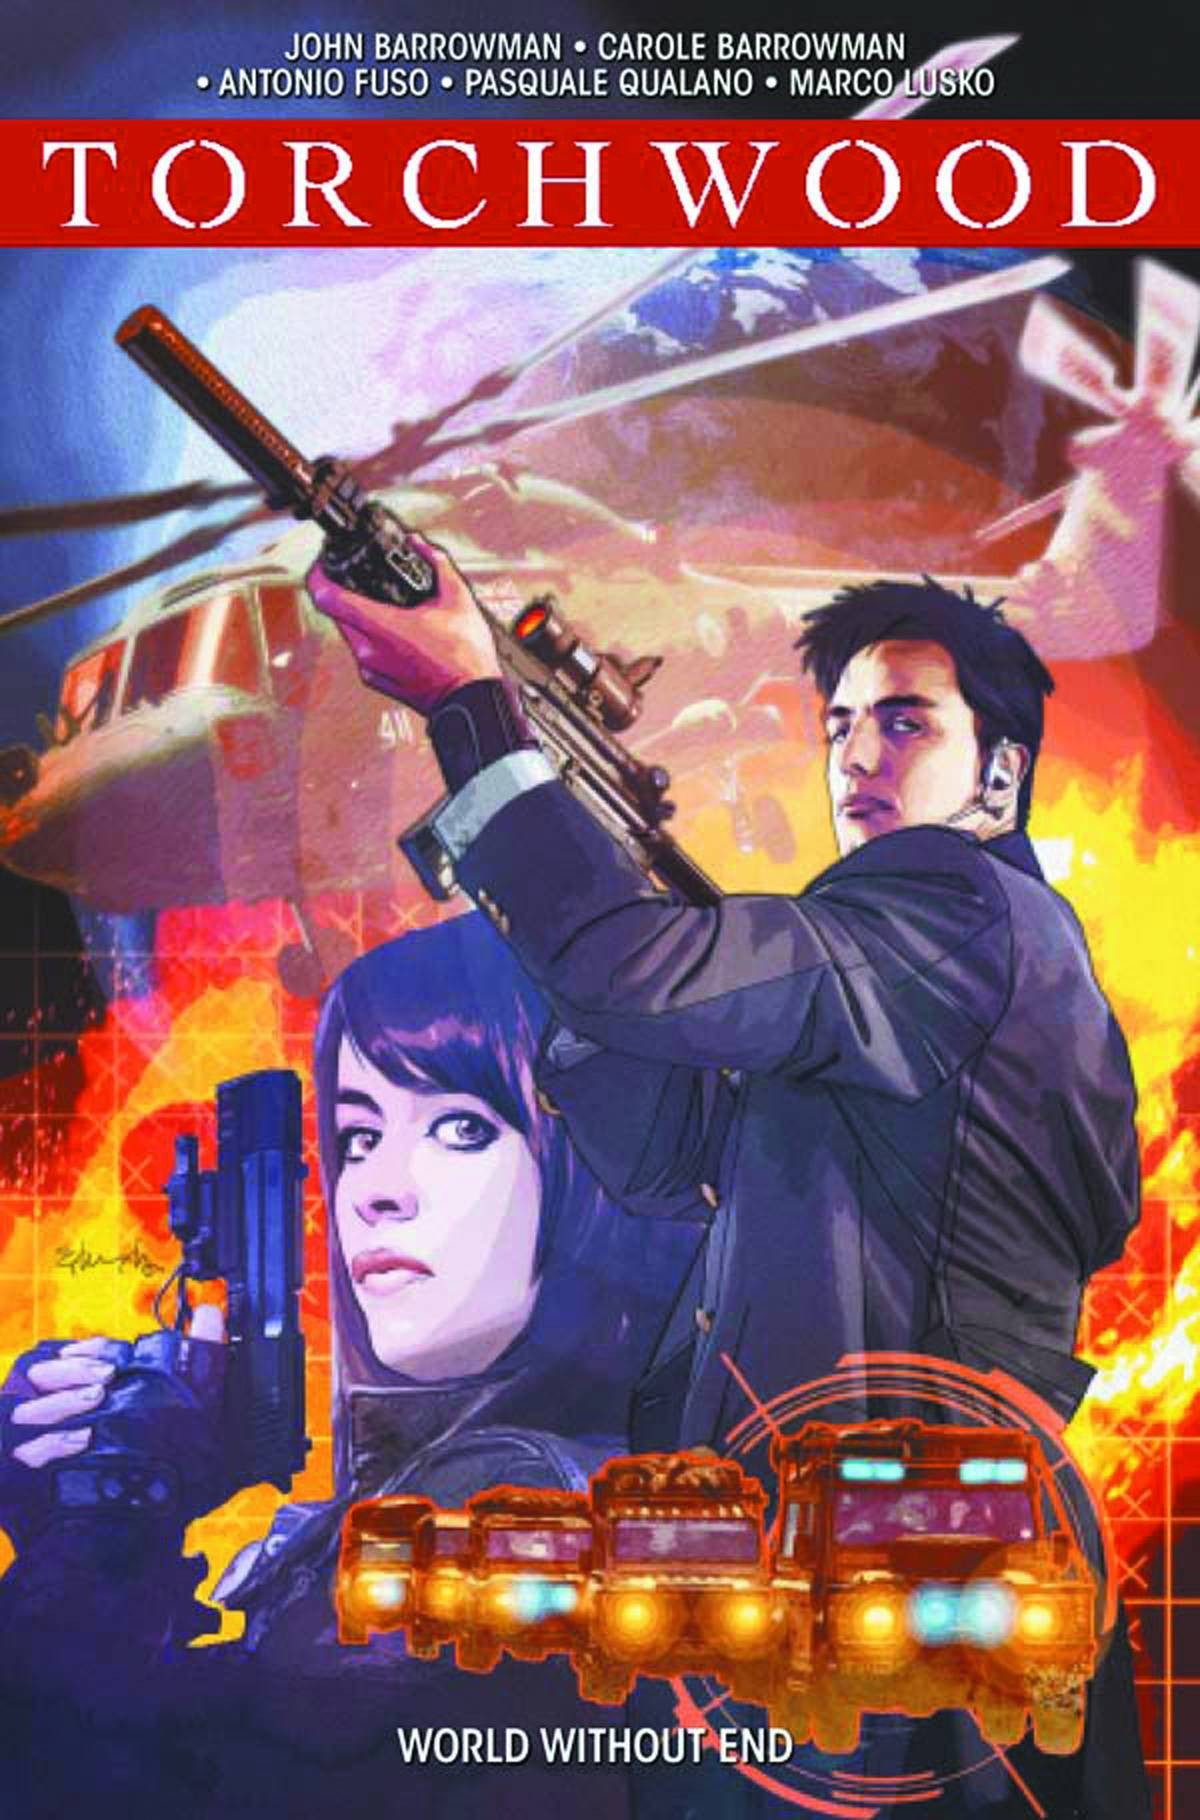 TORCHWOOD TP VOL 01 WORLD WITHOUT END